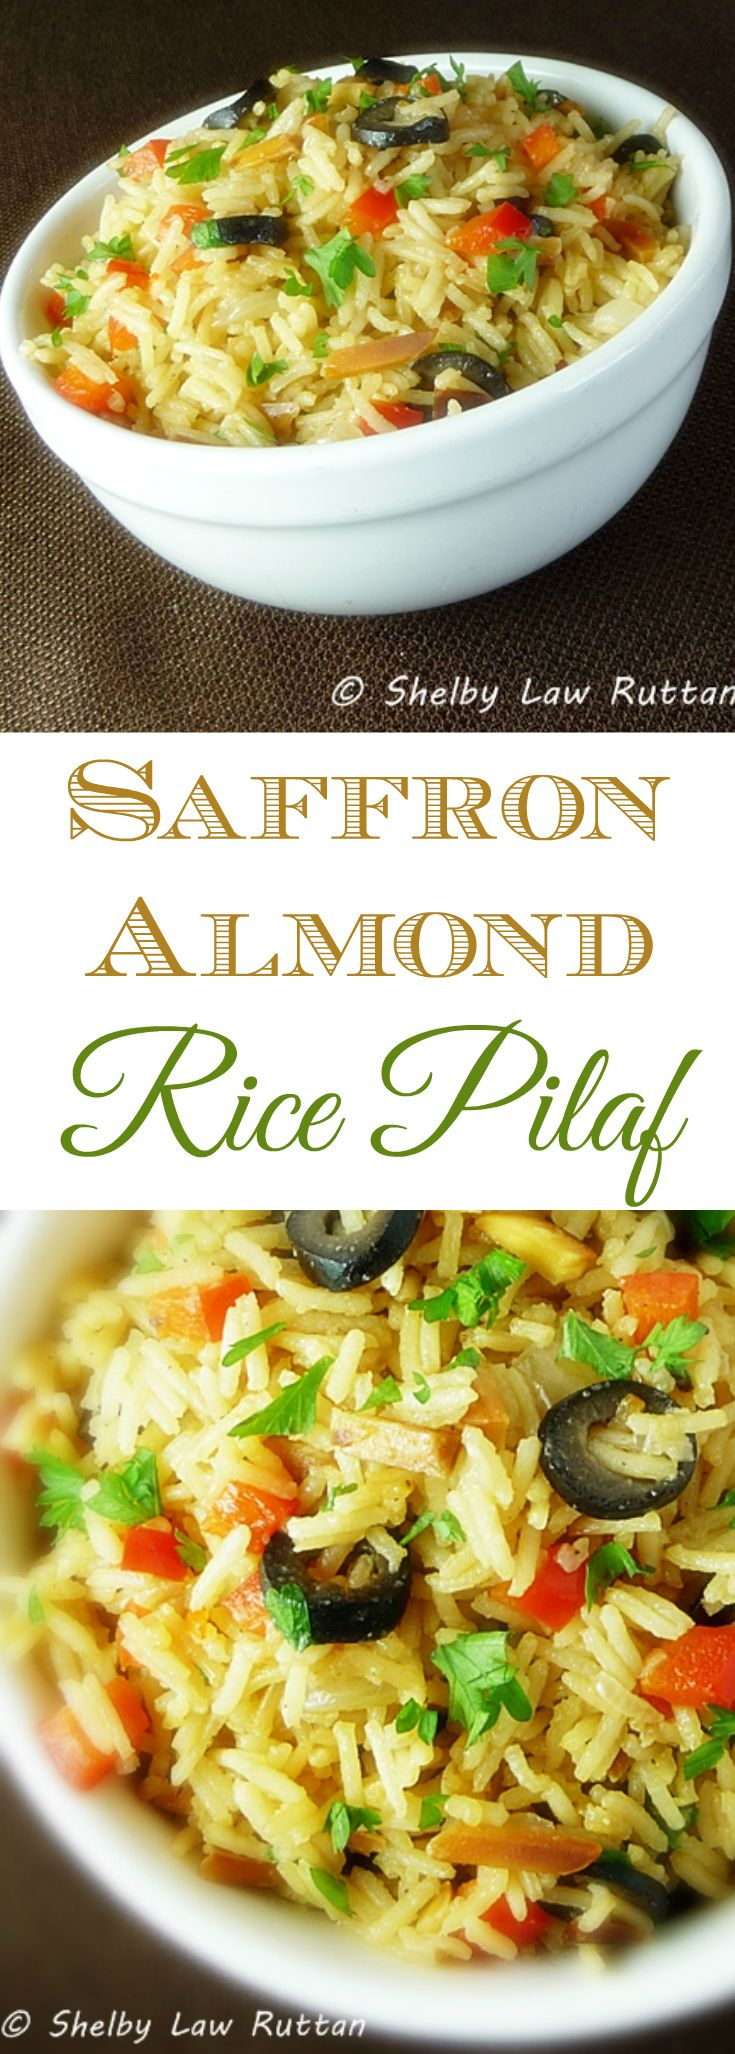 Saffron Almond Rice Pilaf, full of flavor, texture, and color, this recipe is a perfect holiday side dish!